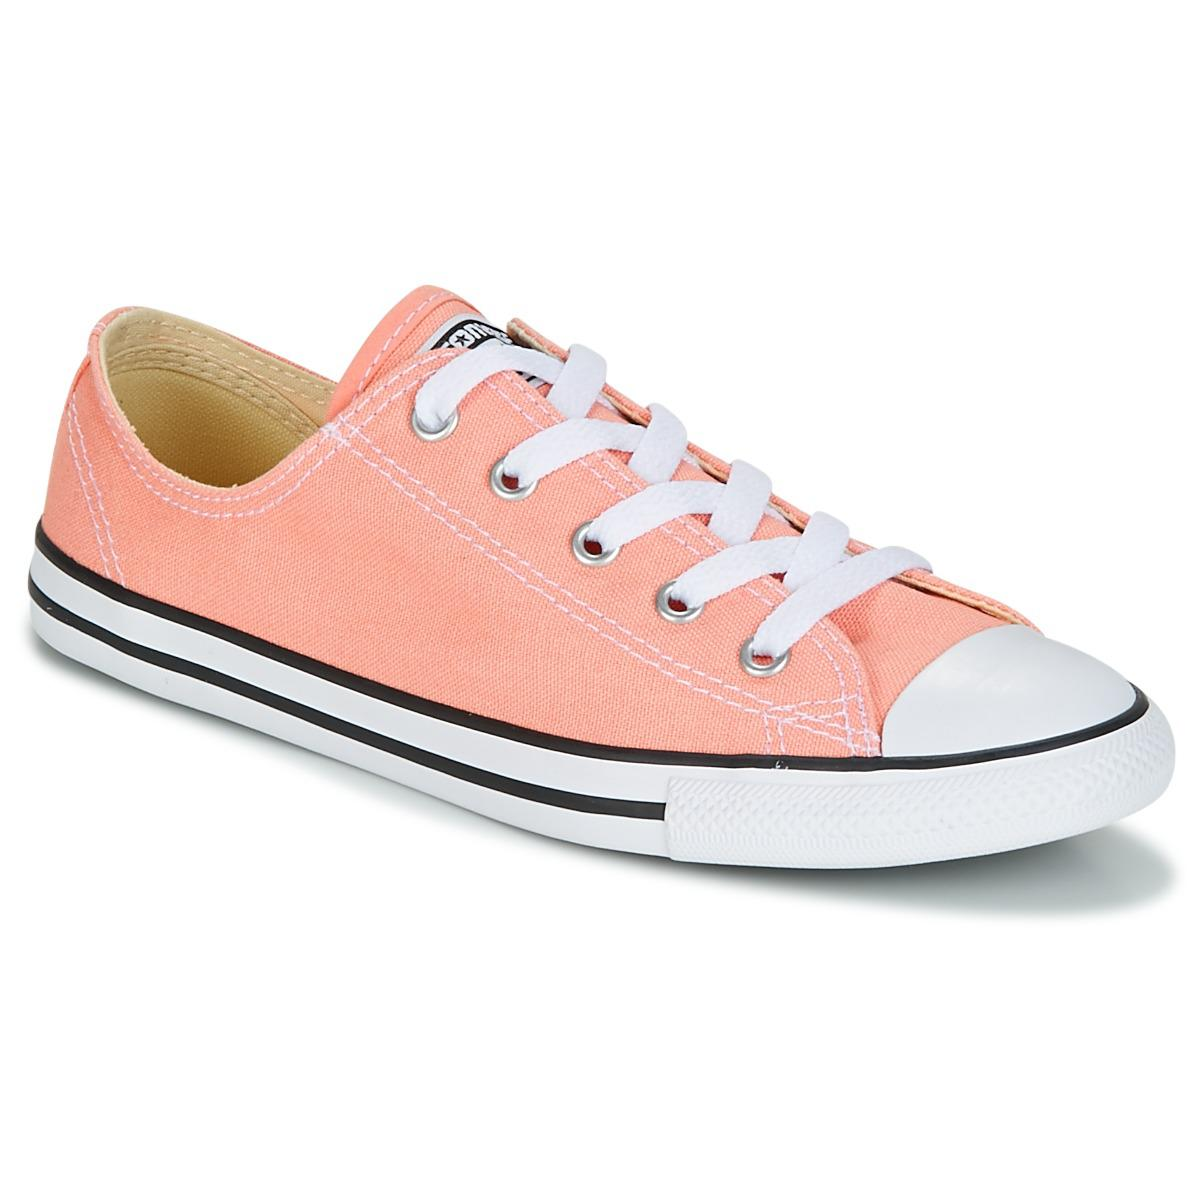 51aefd534552 Converse - Pink All Star Dainty Oxford Shoes Trainers - Lyst. View  fullscreen